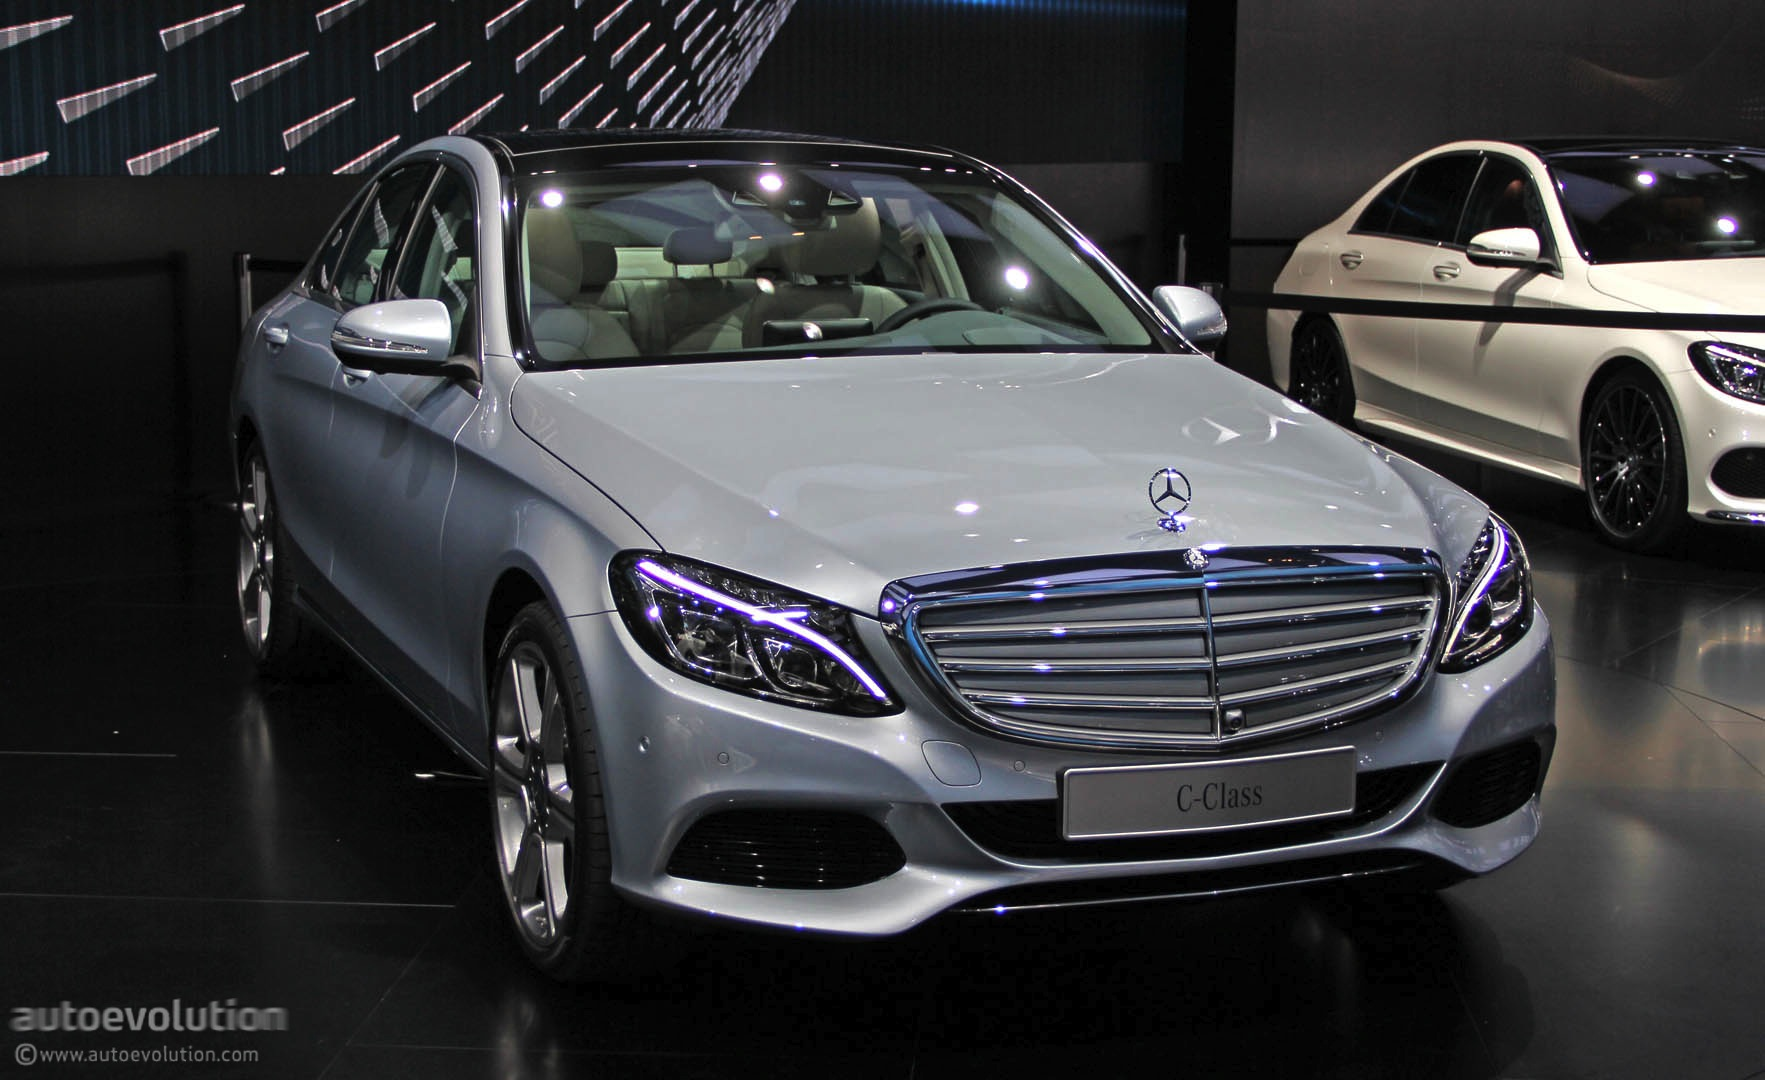 2015 mercedes c class takes a luxury lead in detroit live. Black Bedroom Furniture Sets. Home Design Ideas